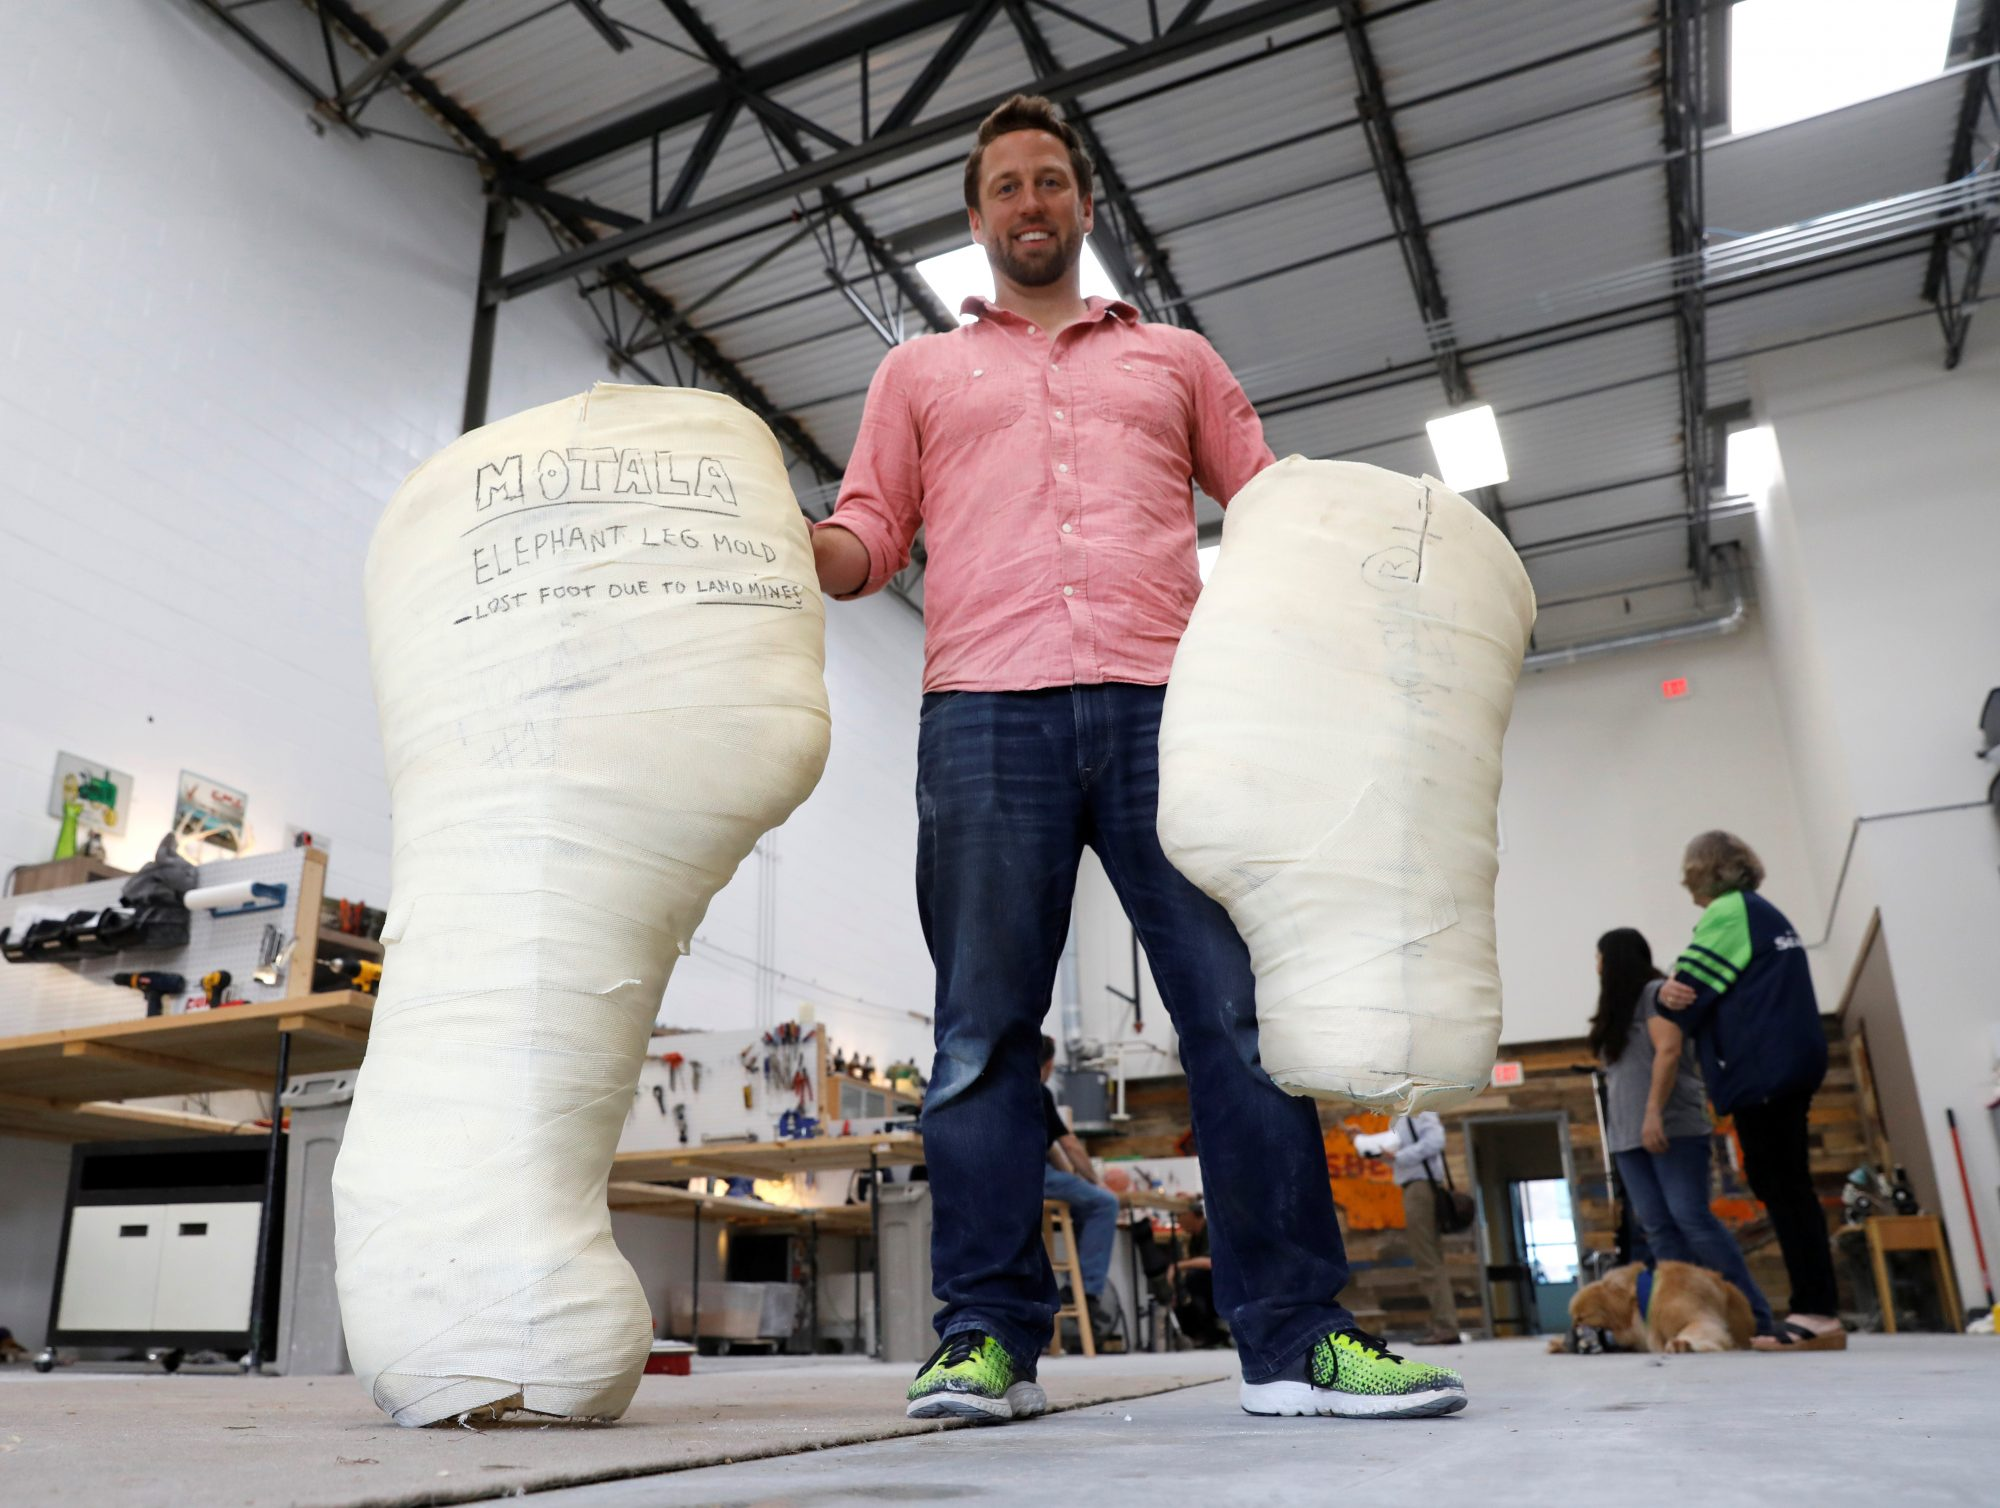 Derrick Campana holds the molds for prosthetic legs he made for two Thai elephants who lost limbs in landmine explosions. Photo by Kevin Lamarque/Reuters